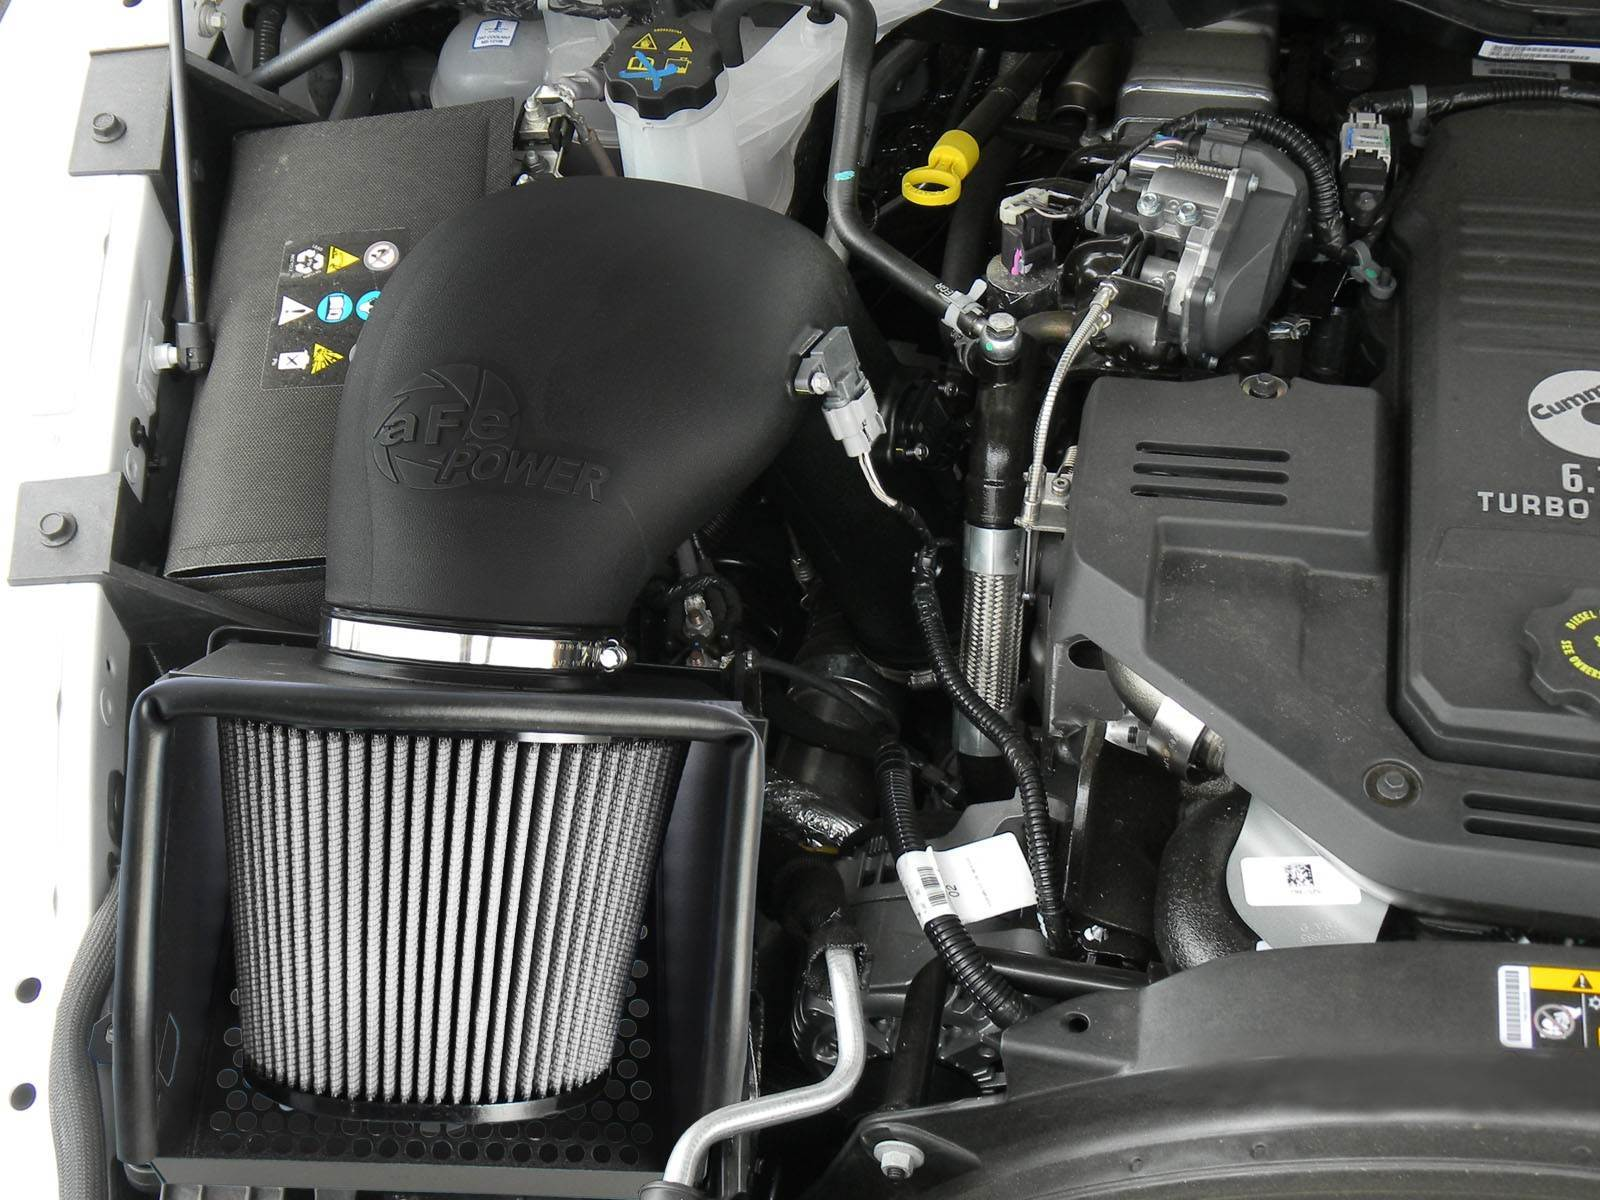 51-32412 - aFE Pro Dry S Performance Cold Air Intake System for 2013-2018 Dodge Cummins 6.7L Diesel Trucks - Installed